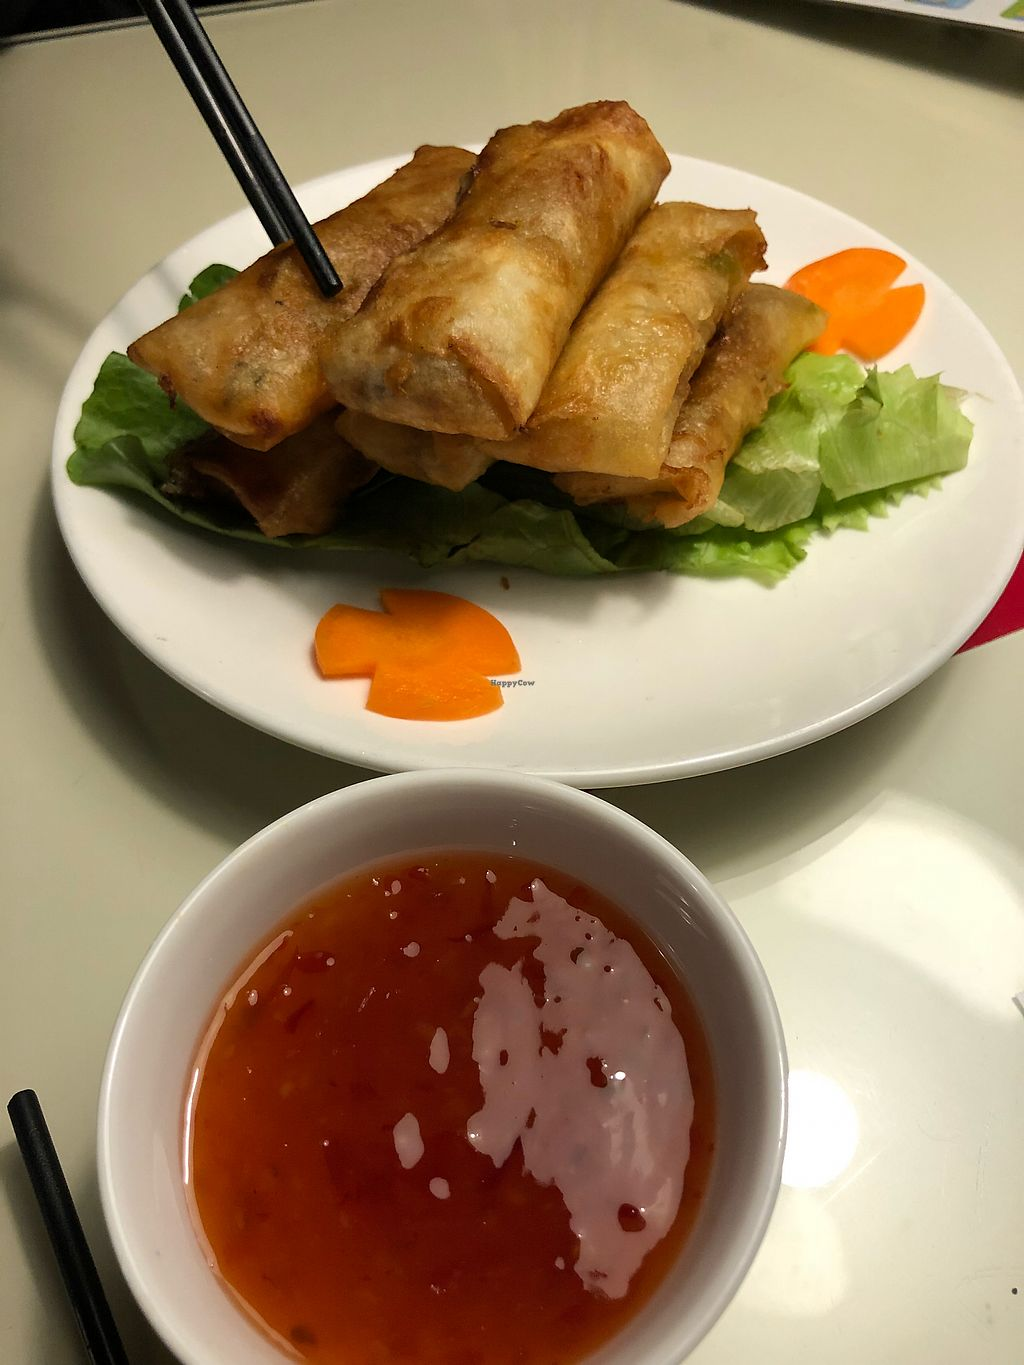 """Photo of The Organic Garden  by <a href=""""/members/profile/SteveTownshend"""">SteveTownshend</a> <br/>Veggie (Vegan) spring rolls.  Very Yummy (but lots of oil) <br/> April 14, 2018  - <a href='/contact/abuse/image/117315/385499'>Report</a>"""